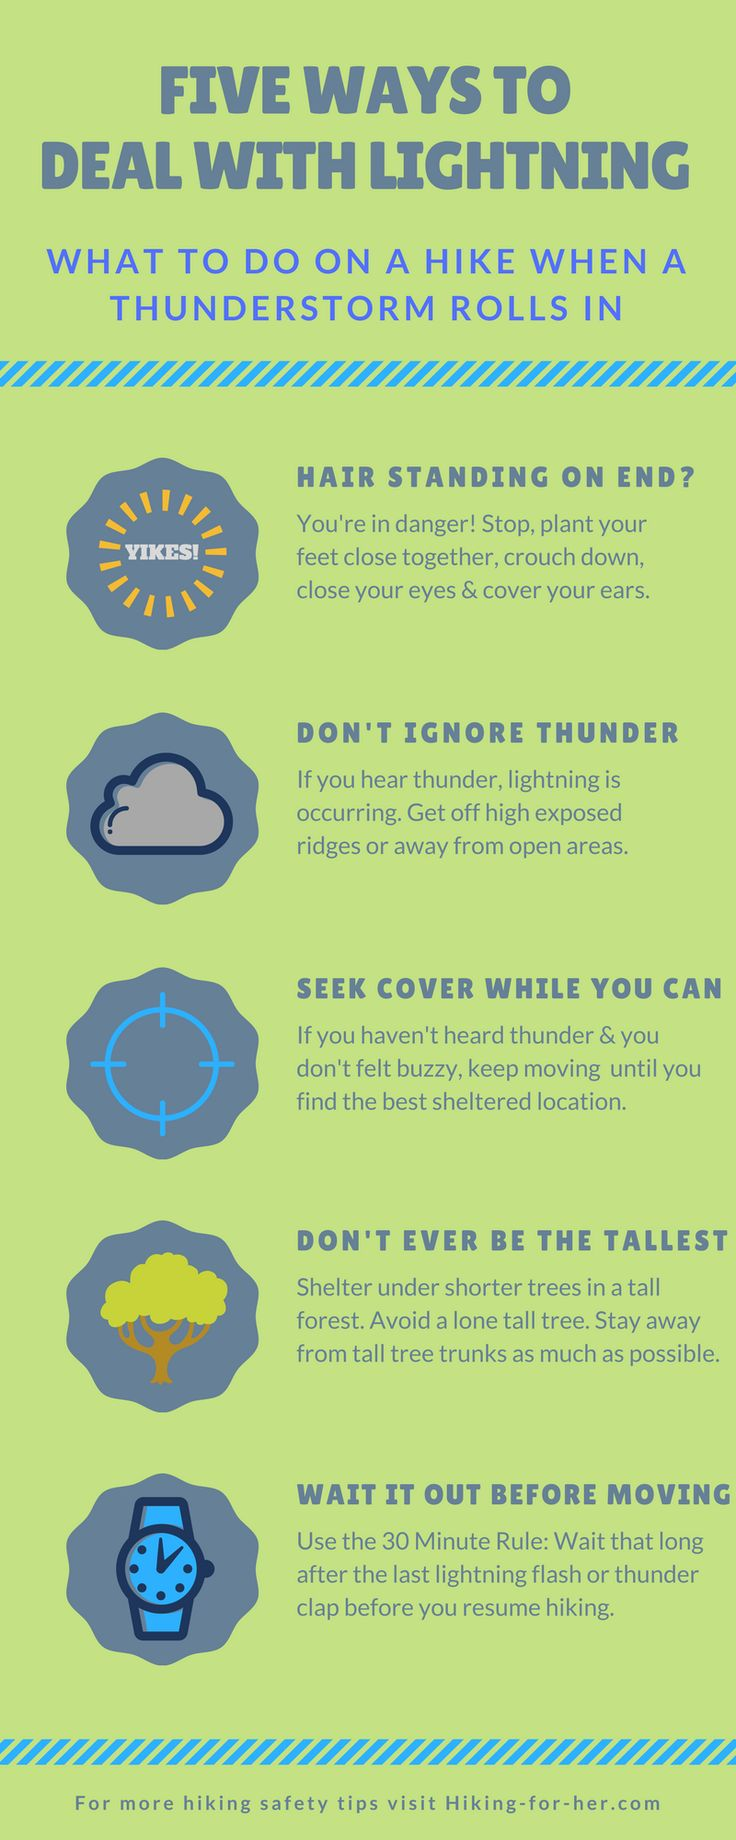 Wondering how to deal with lightning when you're hiking? Here's your answer, from Hiking For Her.